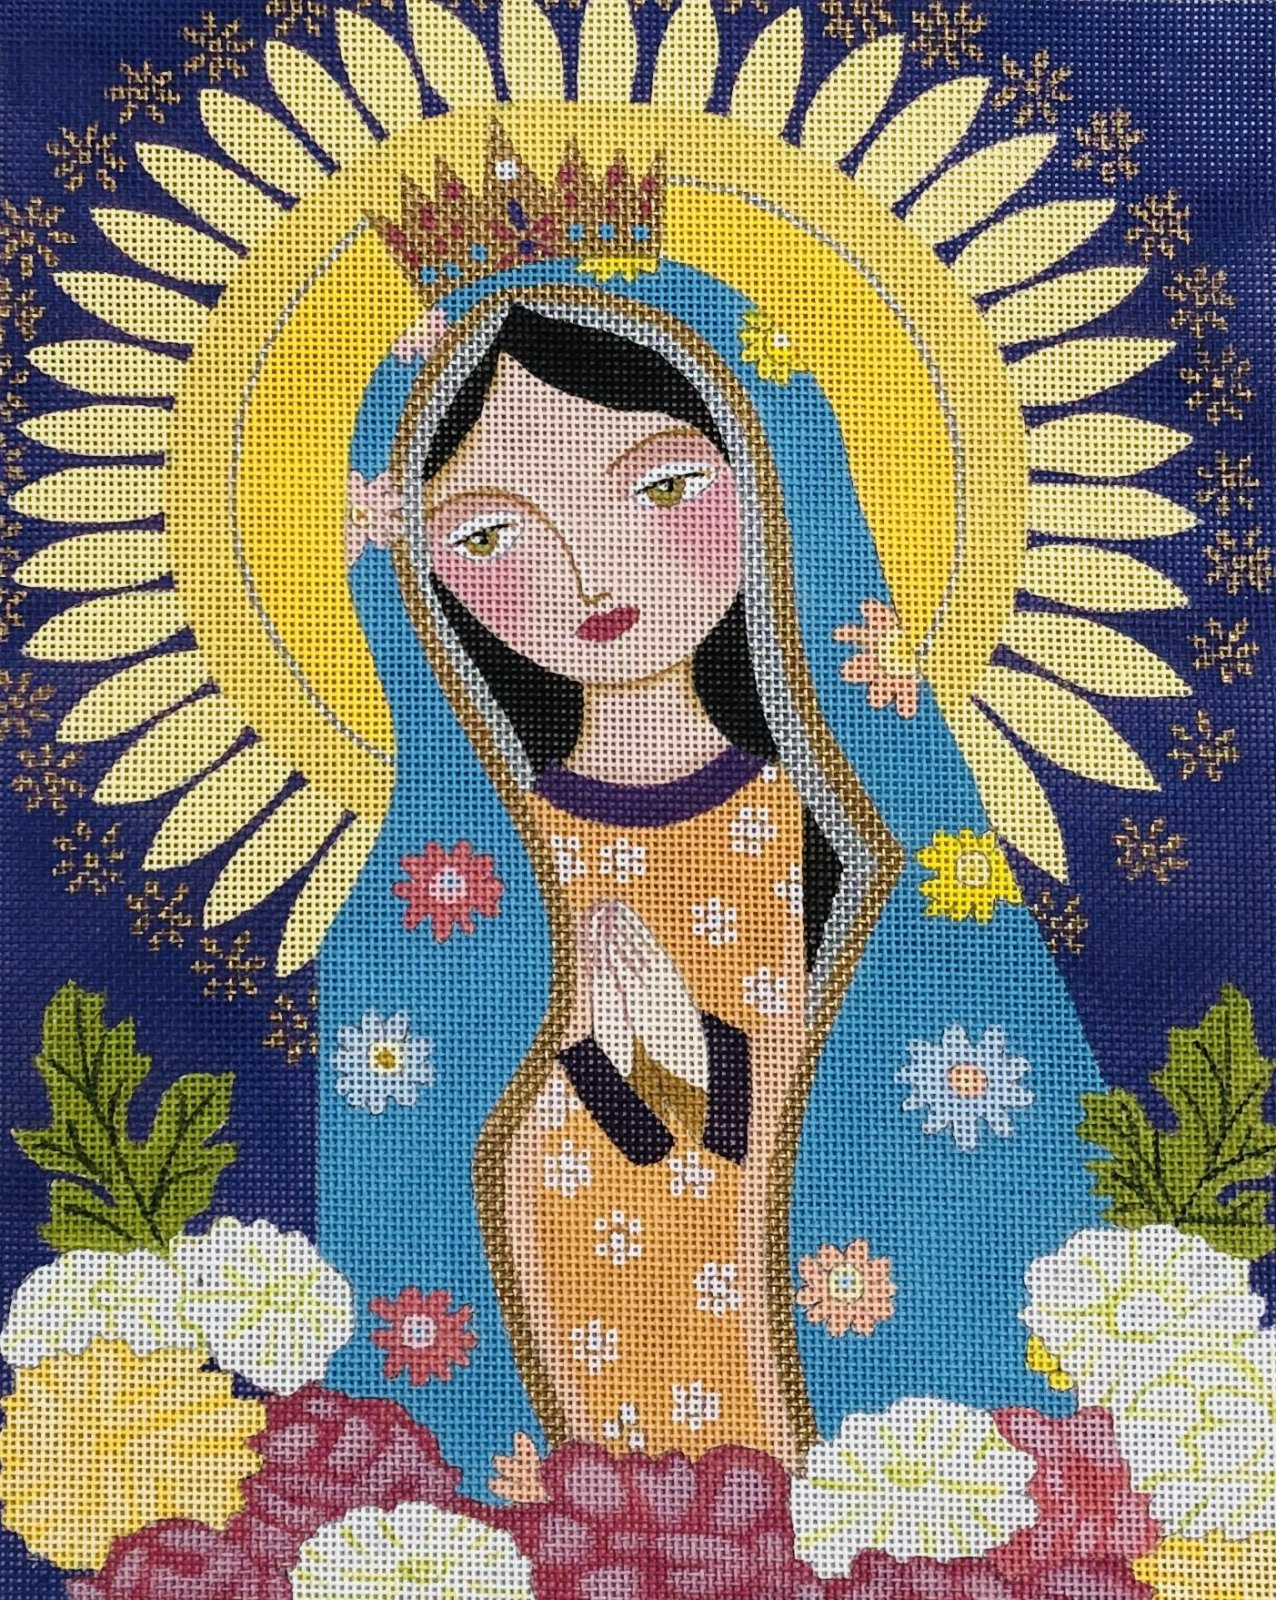 Our Lady of Guadaloupe